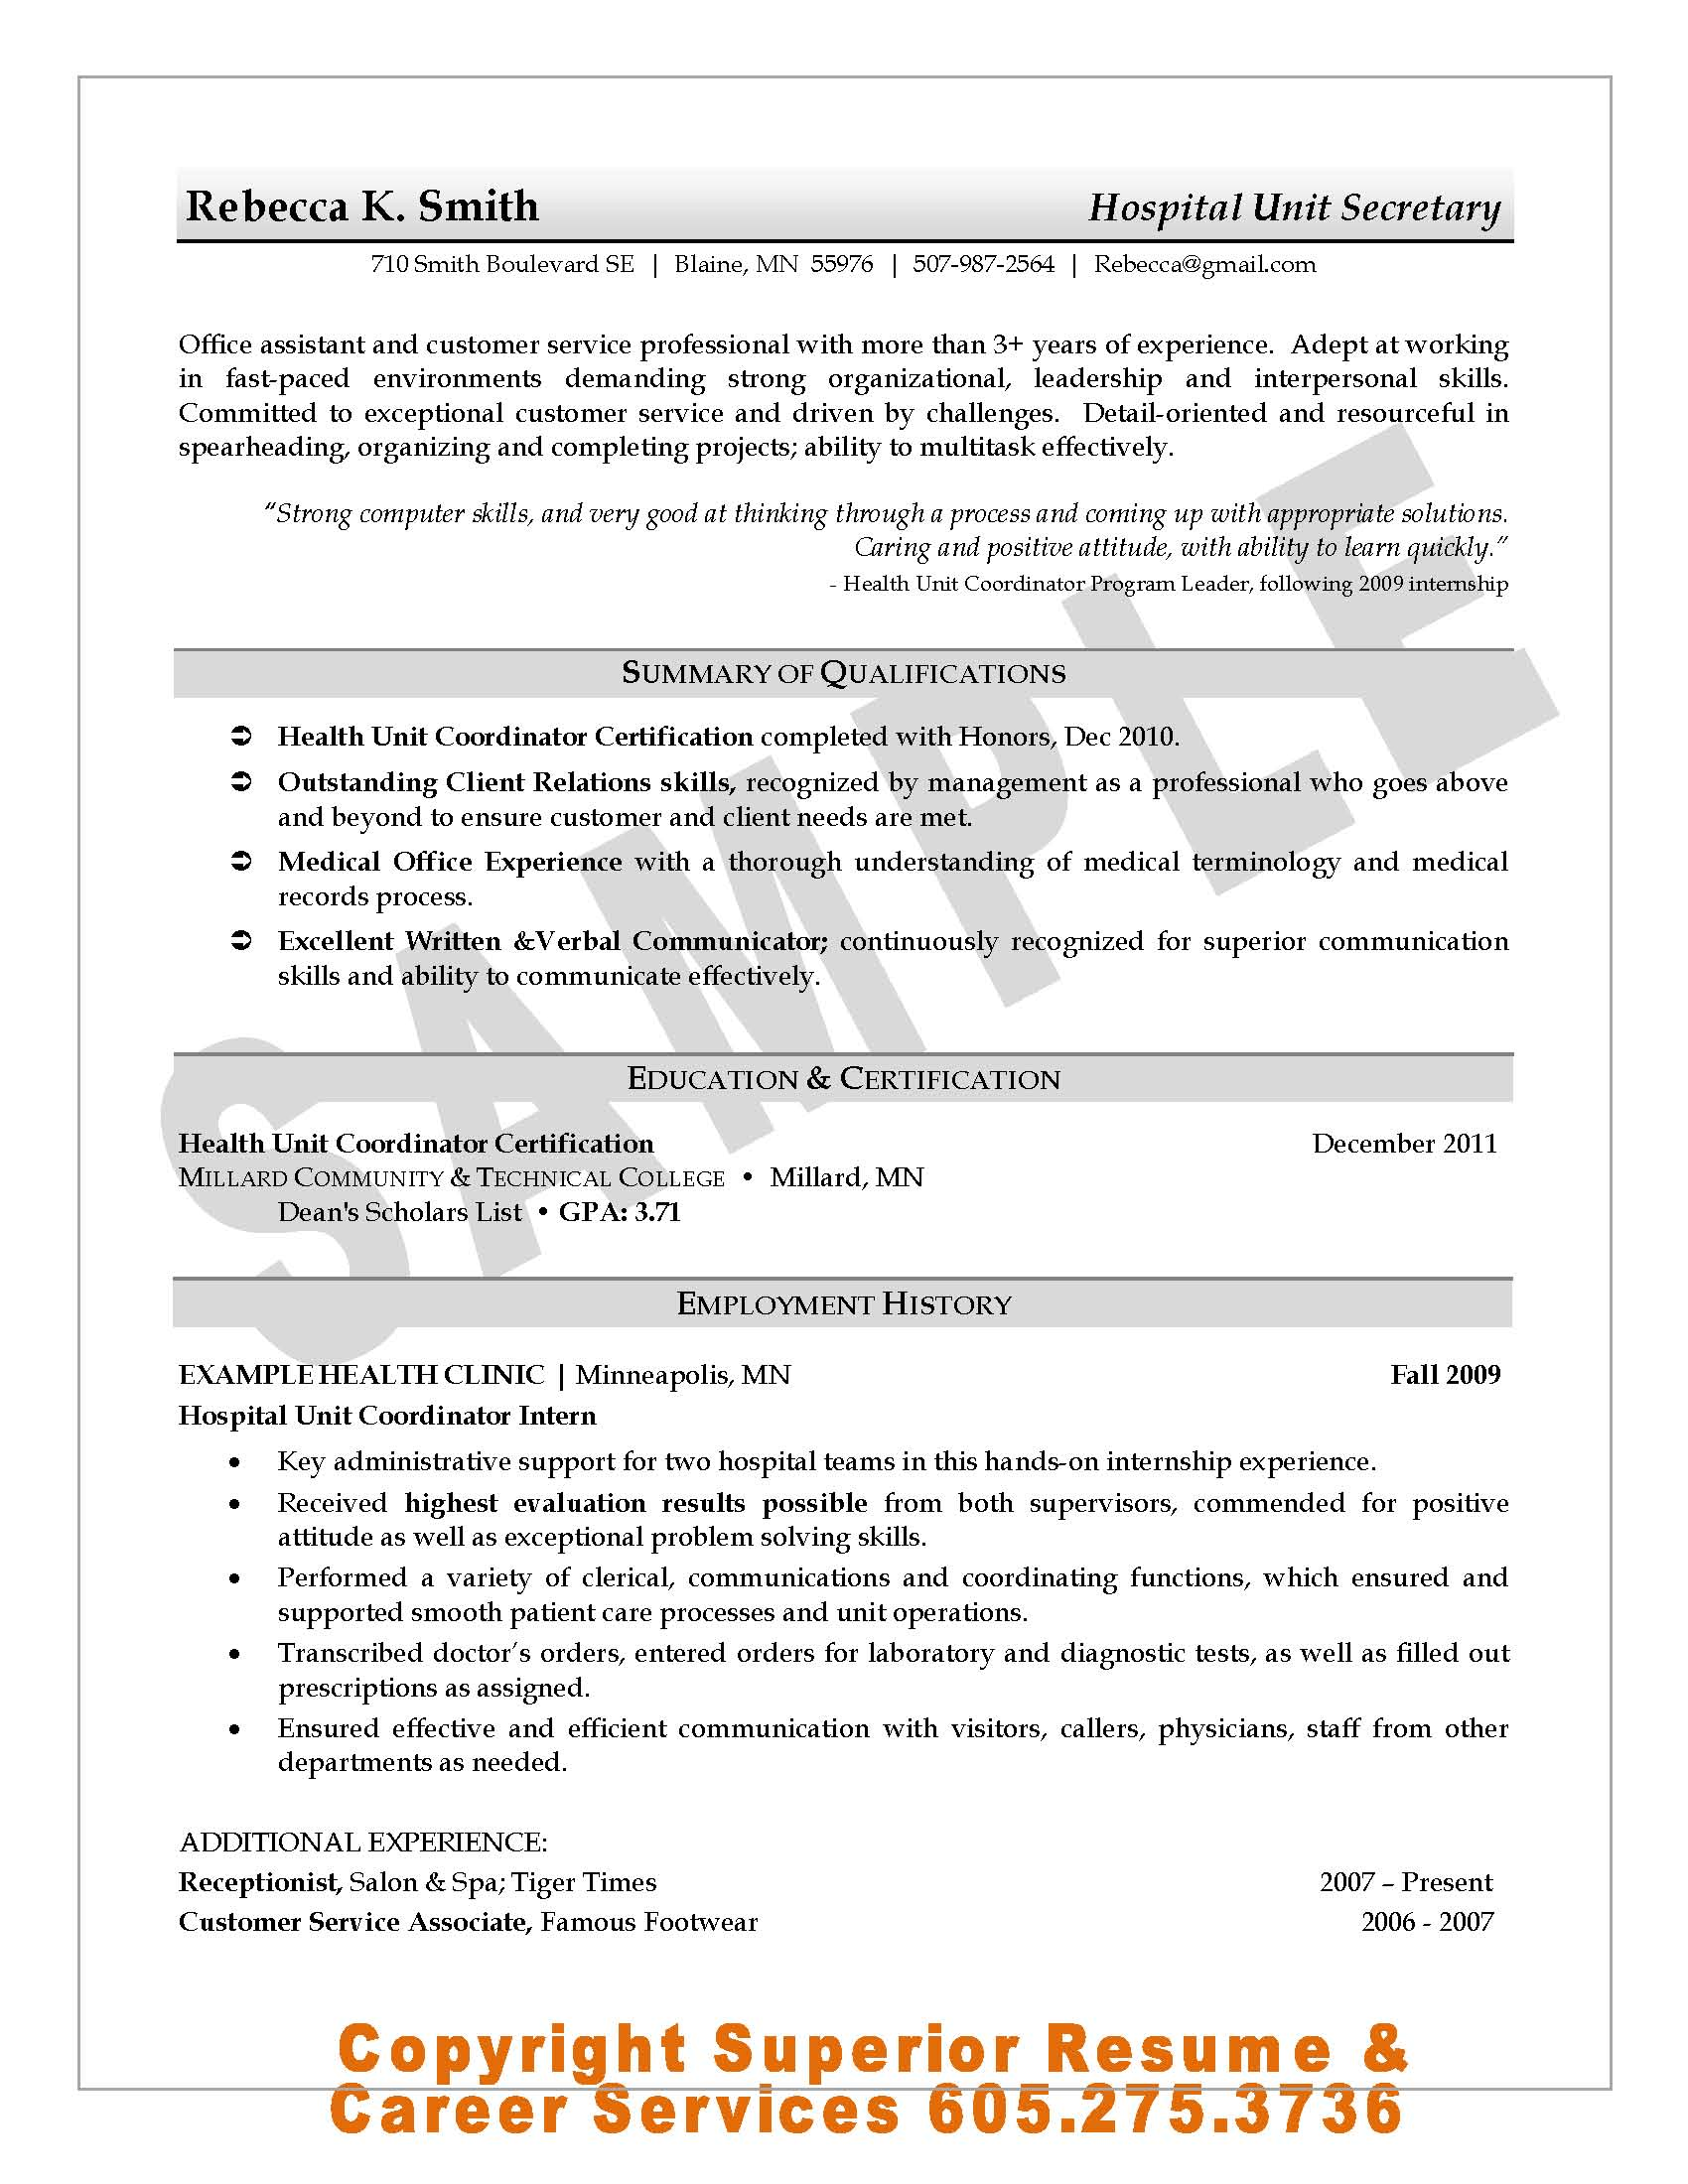 Resume Format References Available Upon Request Resume Templates